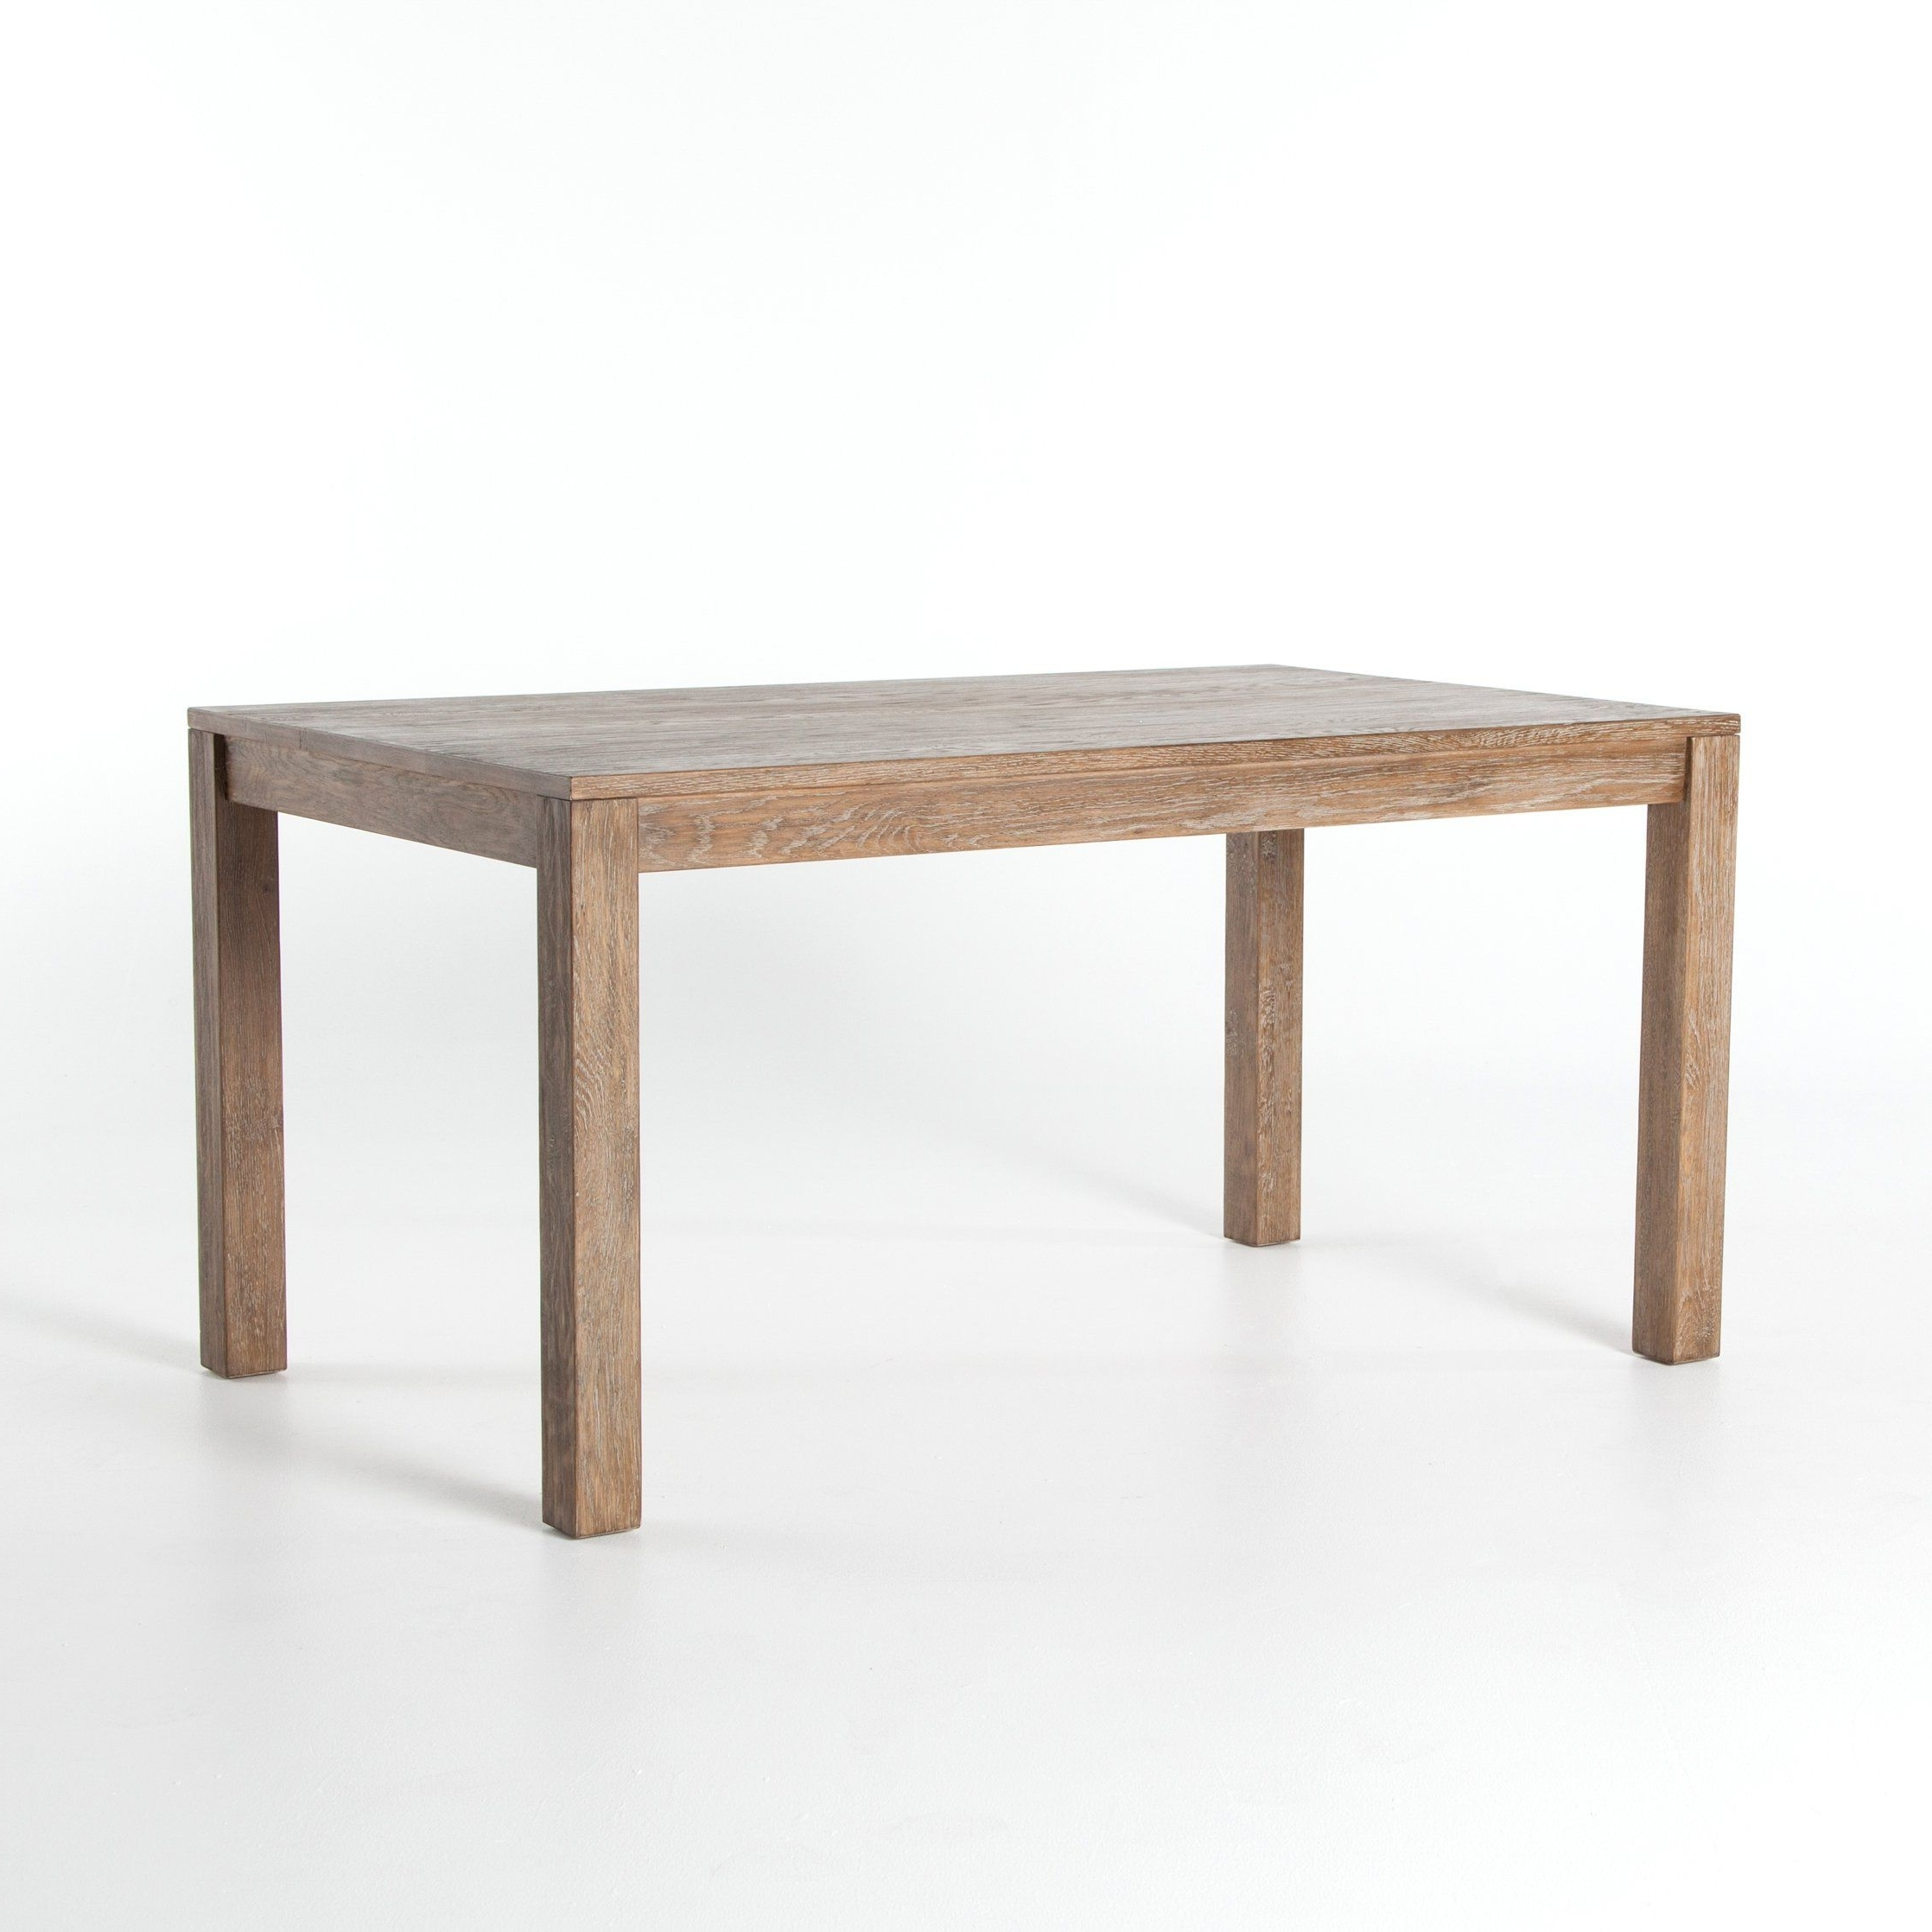 Widely Used Caden Dining Table: Light Burnt Oak (View 16 of 25)